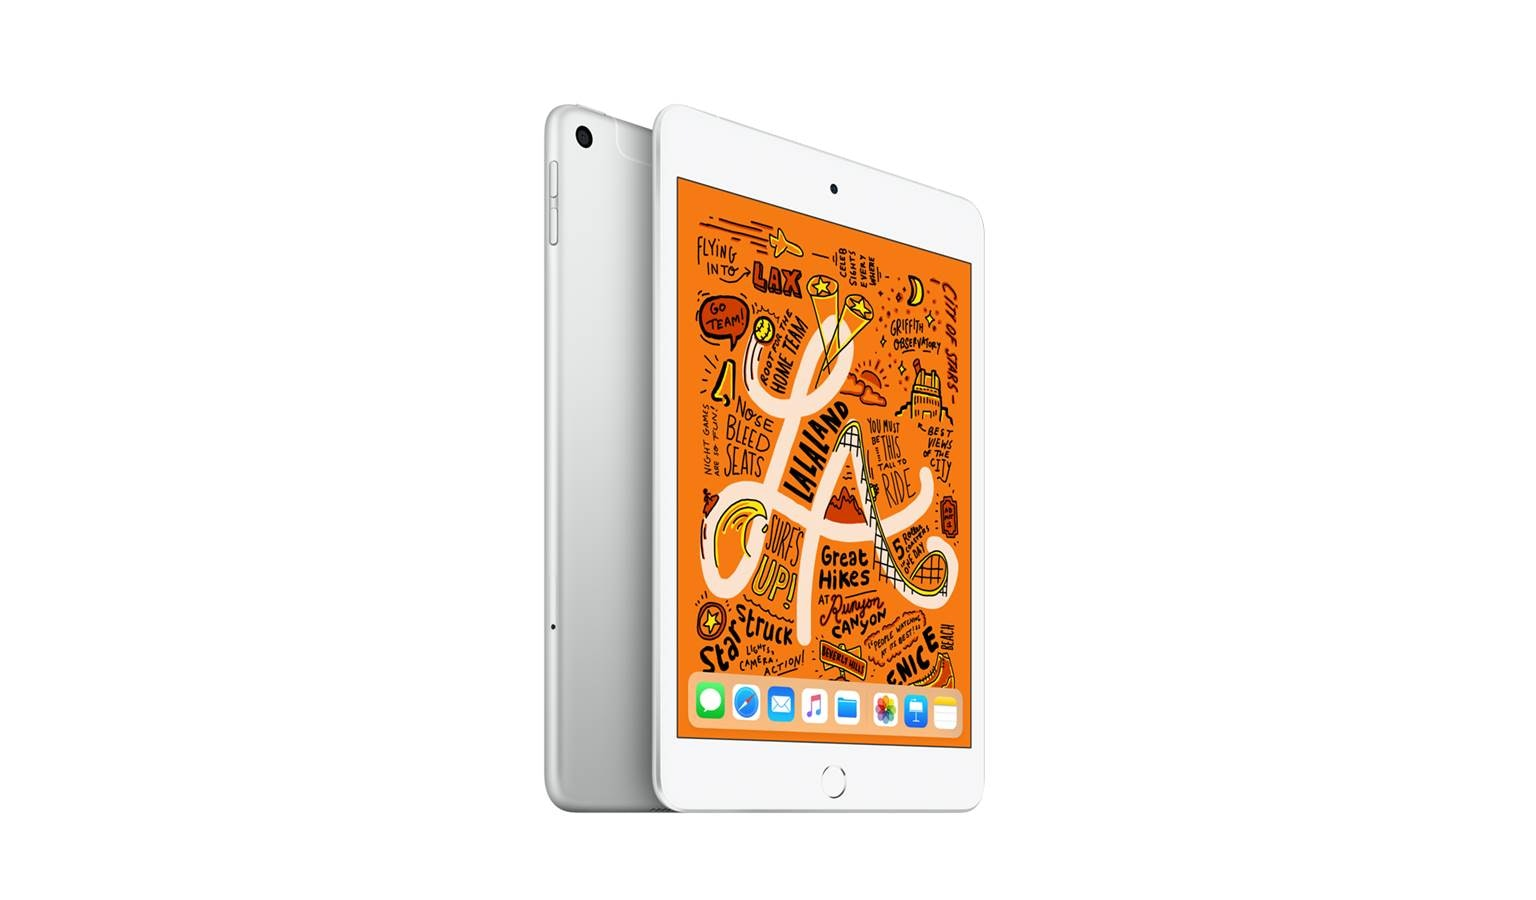 Apple iPad Mini 4G (64GB) - Silver (Front)